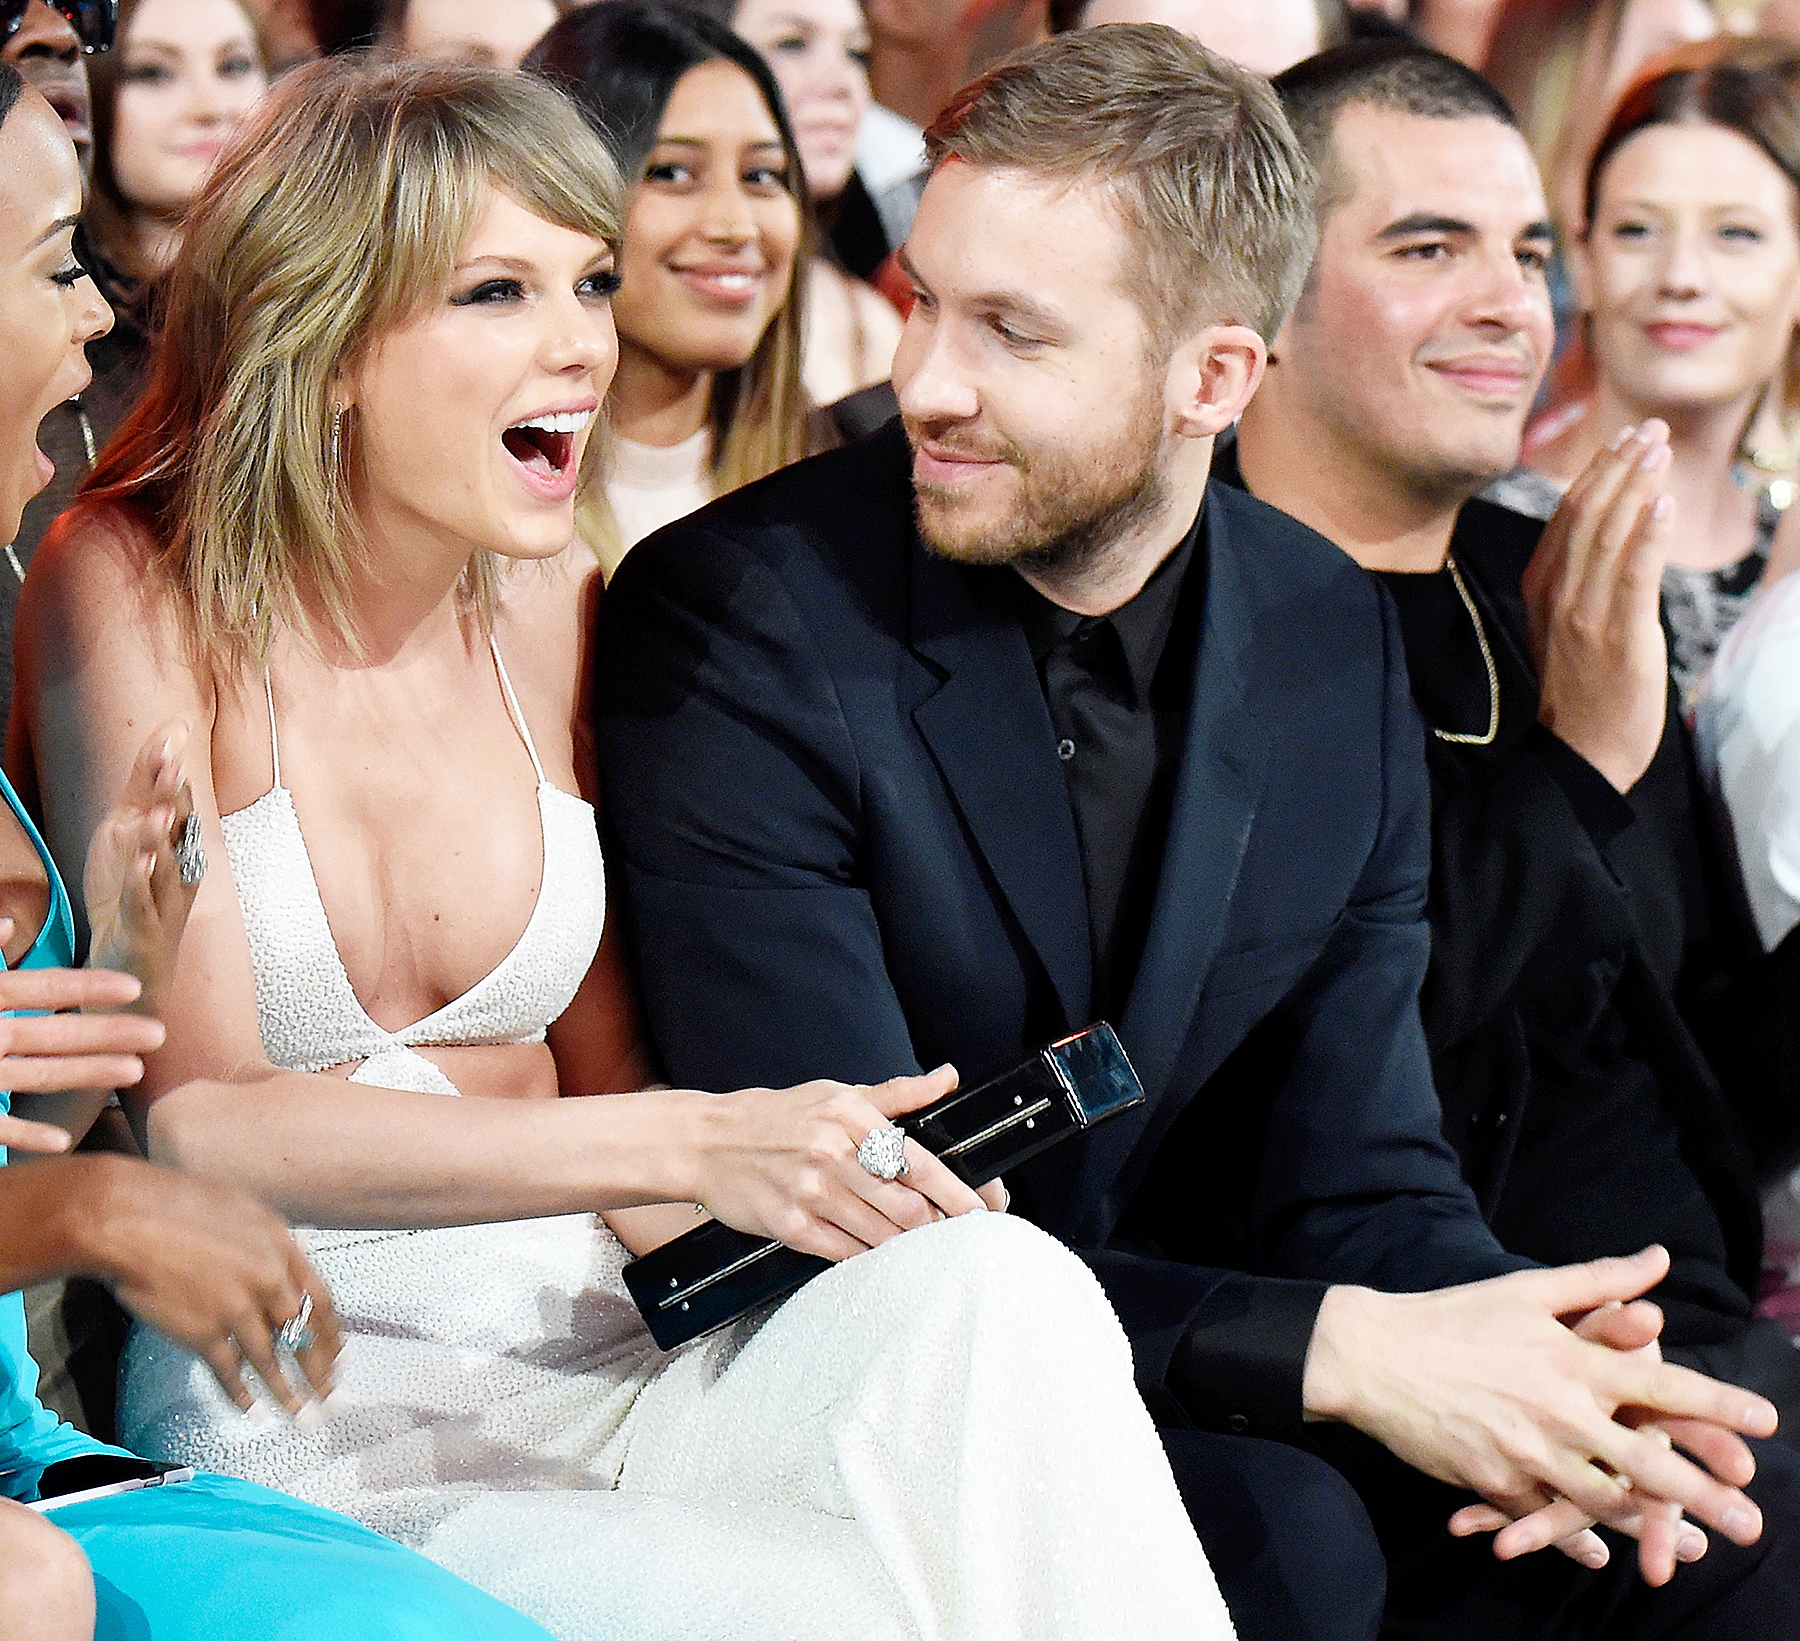 """Taylor Swift and Calvin Harris - Swift met the Scottish DJ backstage at the 2015 Brit Awards and made it official on March 6, 2015. """"I'm in a magical relationship right now. And of course I want it to be ours, and low-key,"""" she told Vogue in April 2016."""